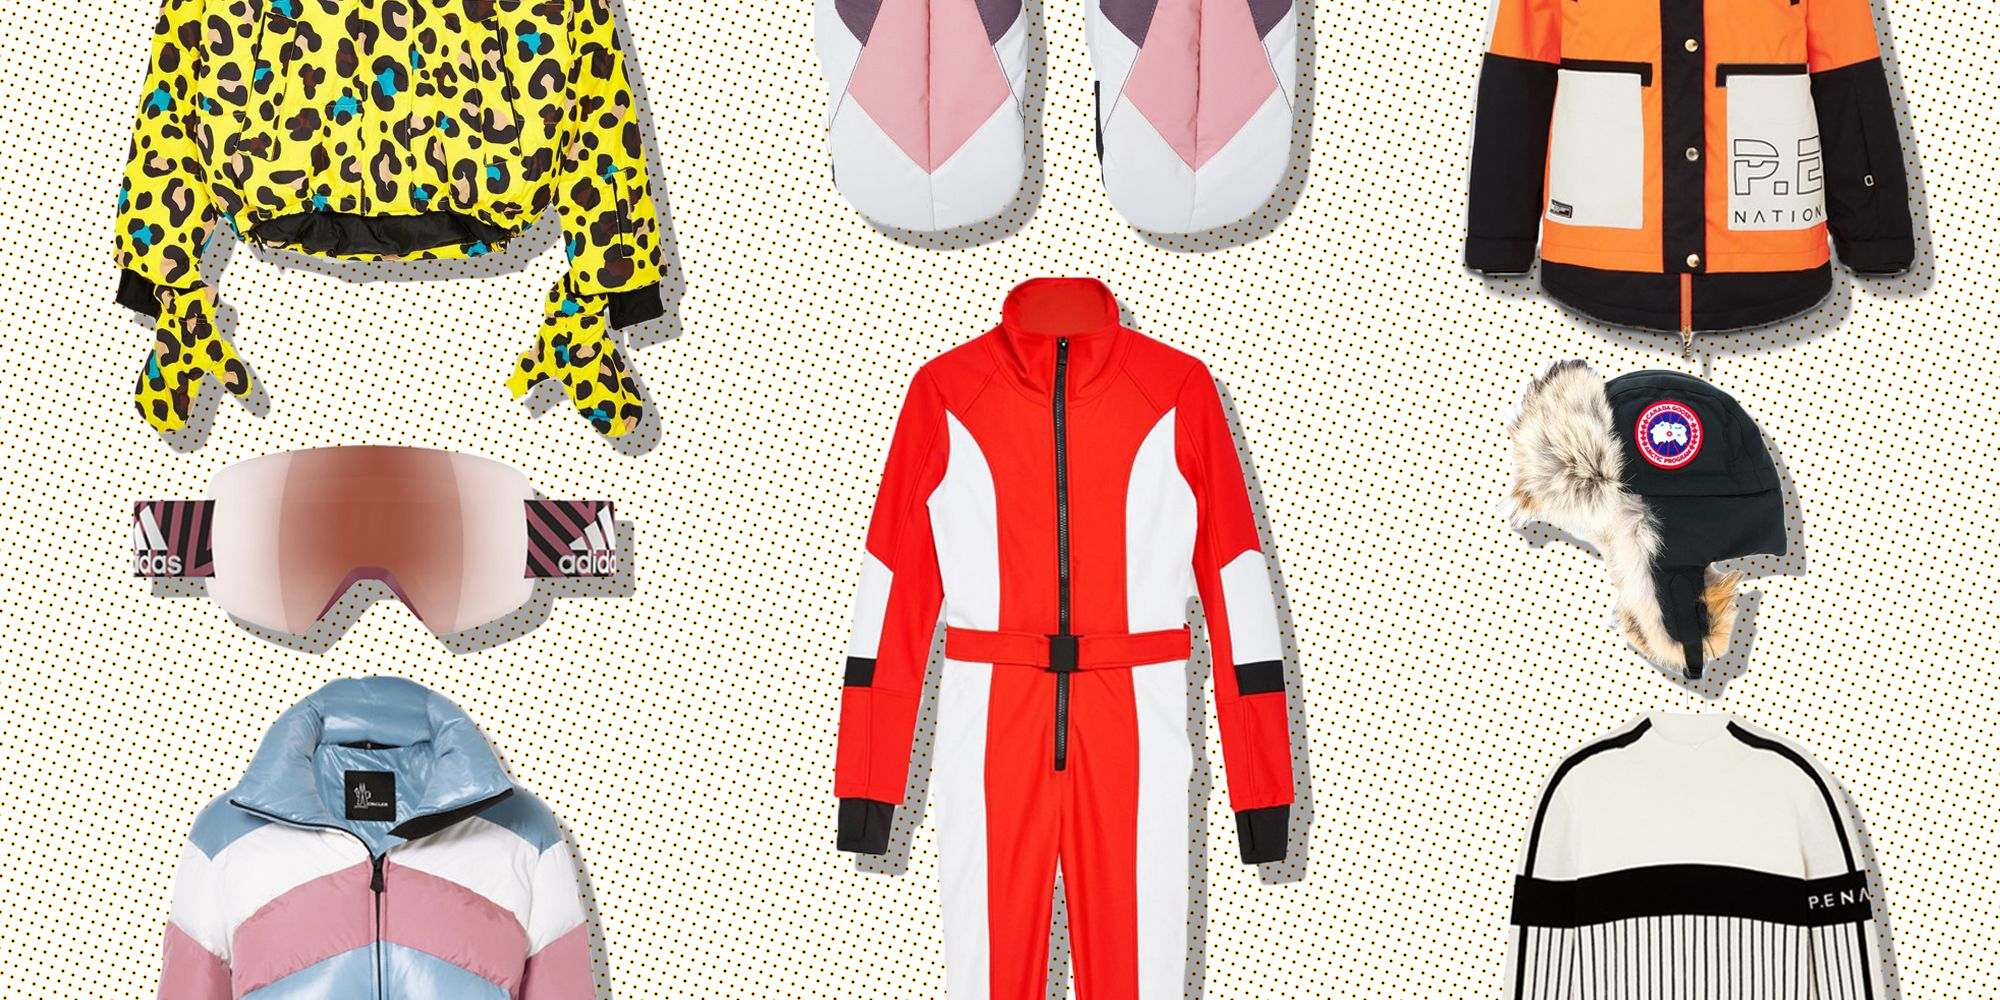 The Best Skiwear For Conquering The Slopes In Style